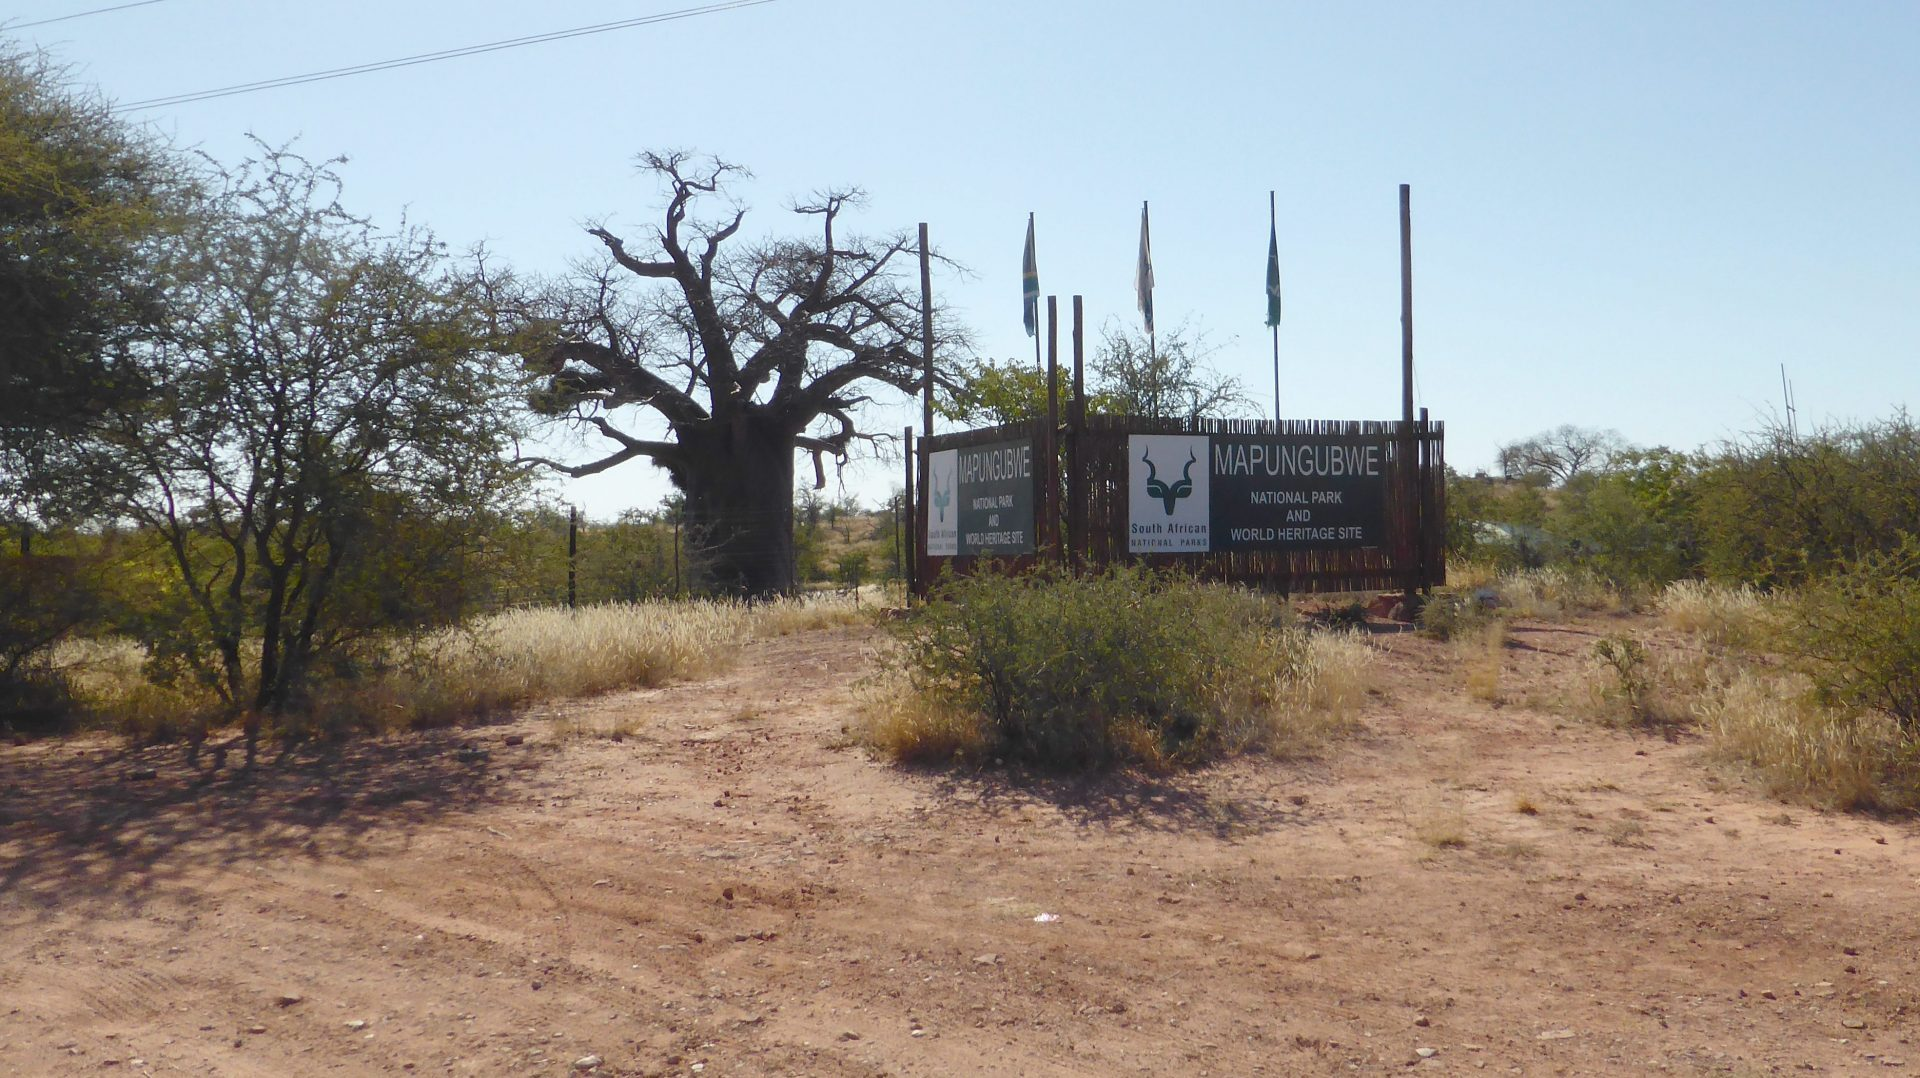 Main Gate Mapungubwe